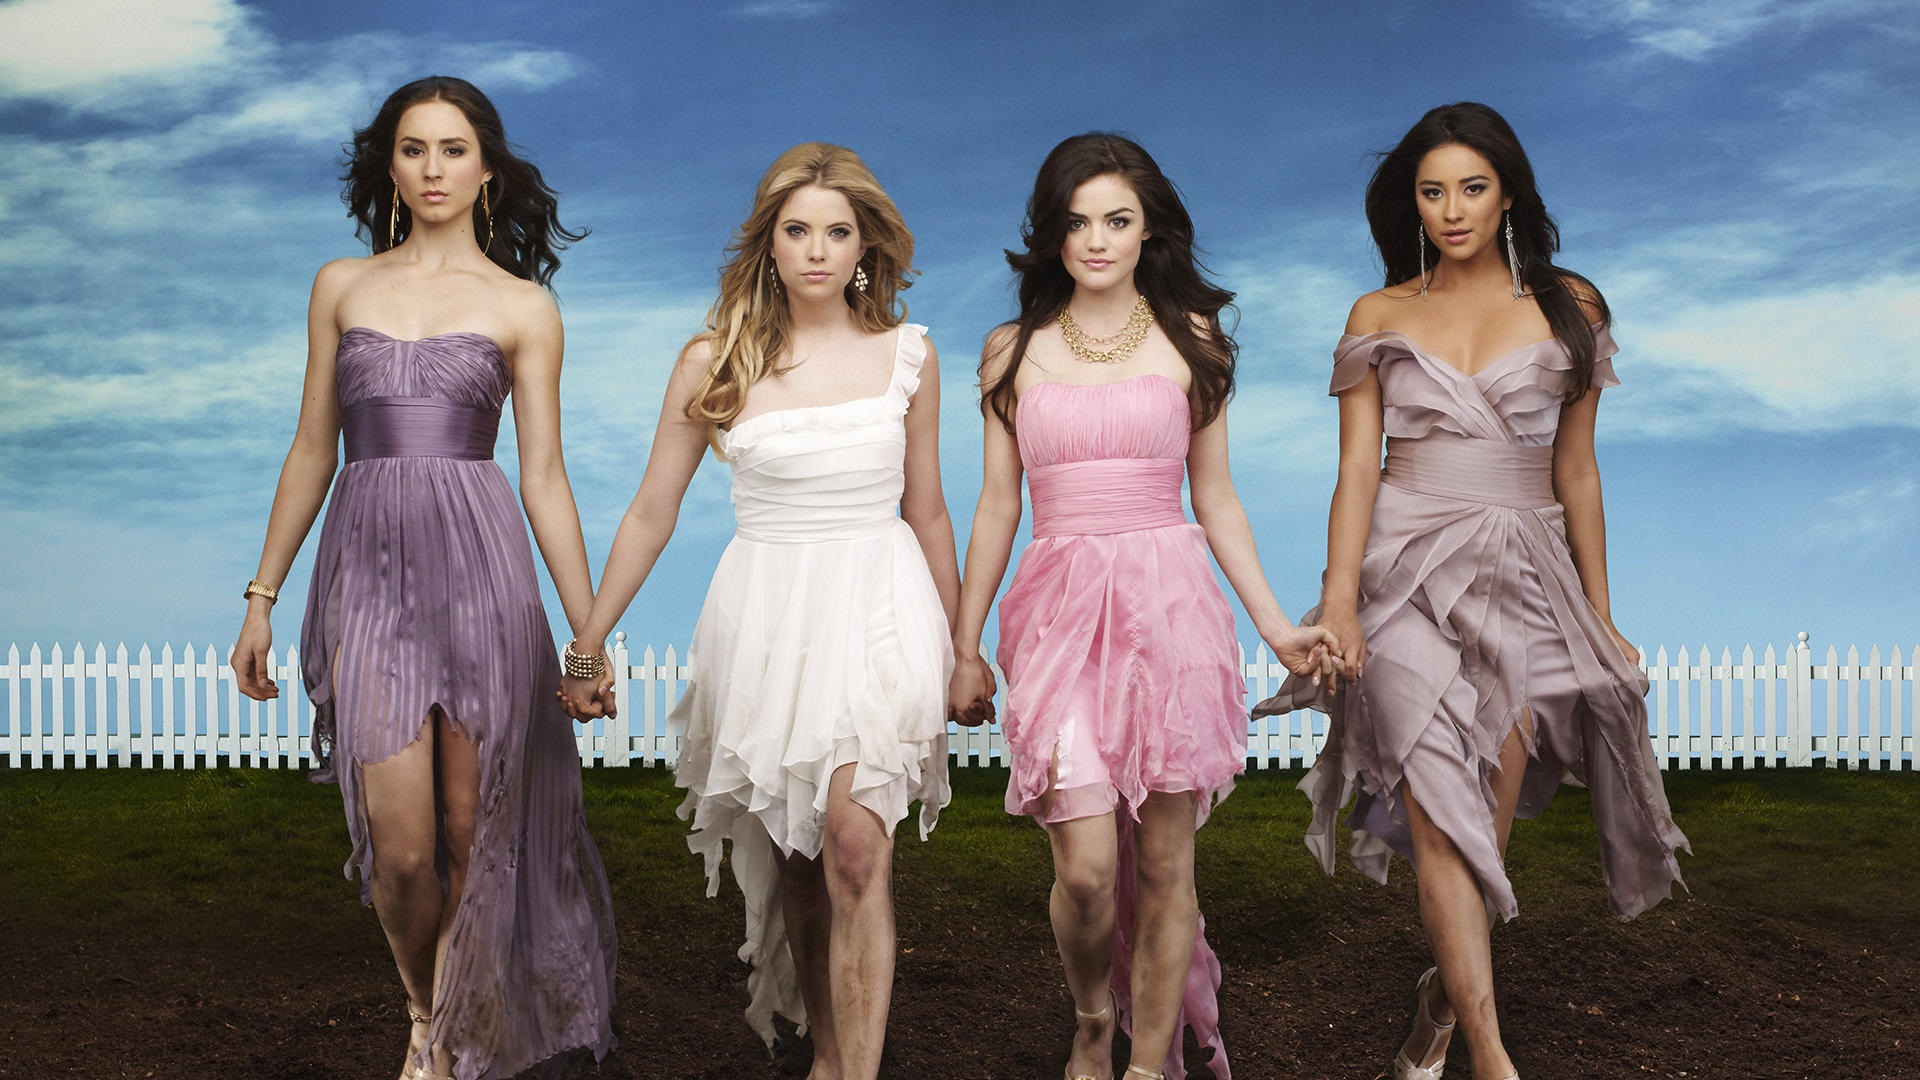 Die vier Protagonistinnen aus Pretty Little Liars; Copyright: ABC Family​​​​​​​